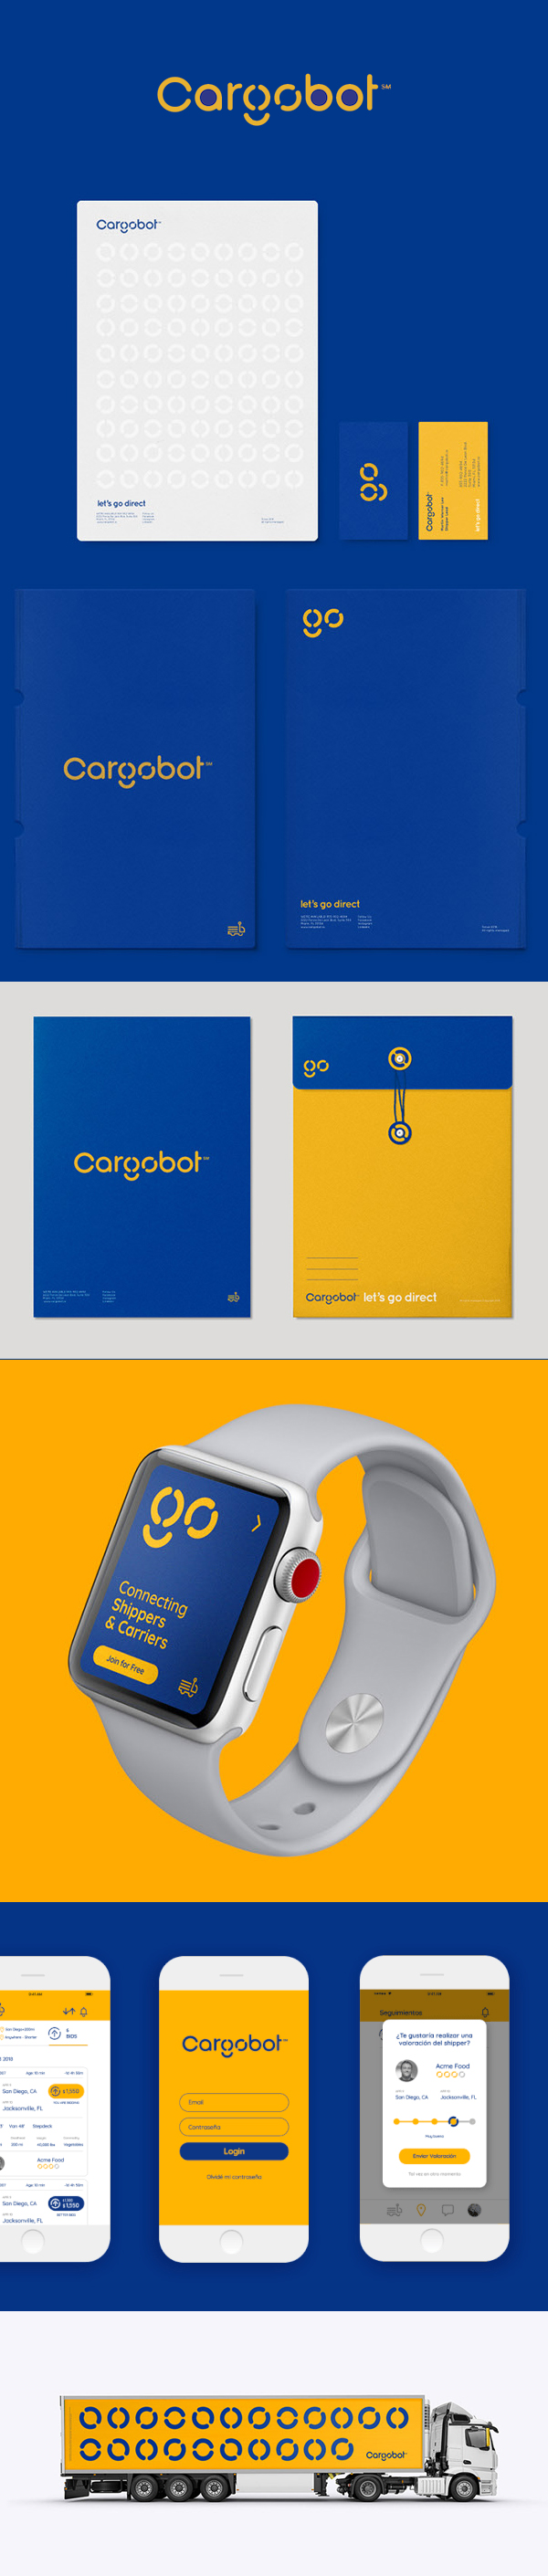 Branding: Cargobot Digital Global Branding by hachetresele